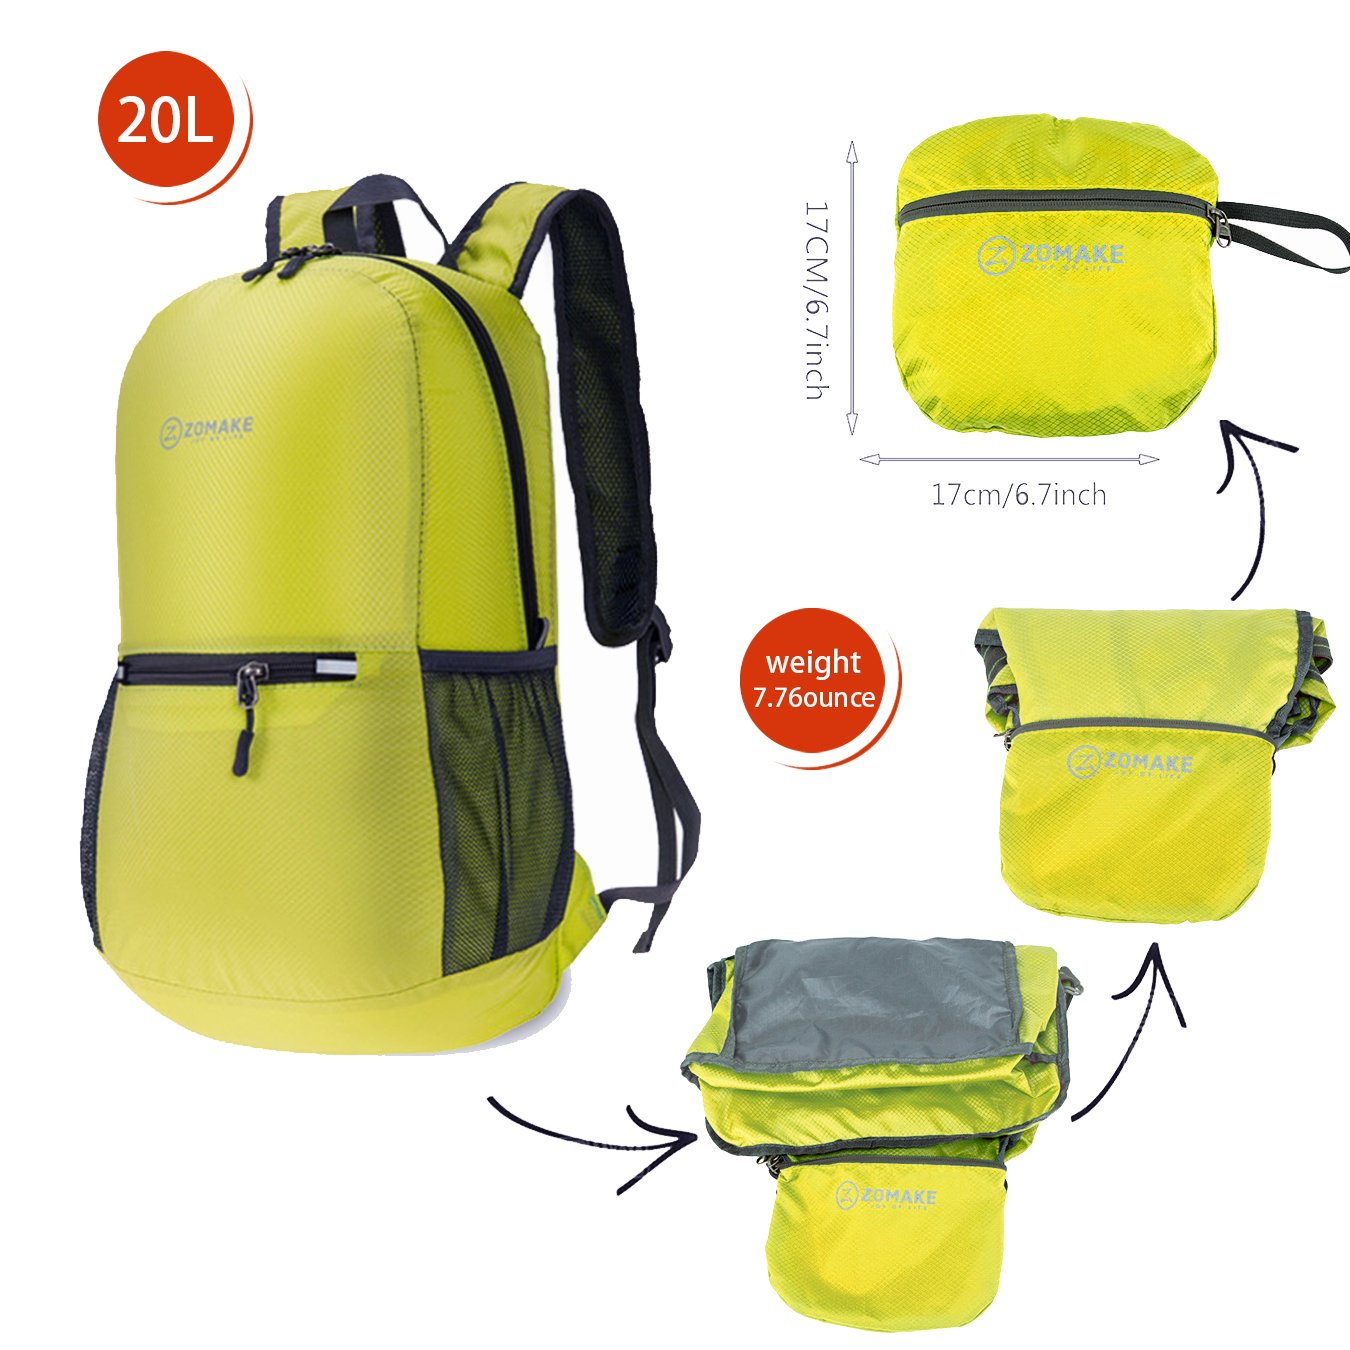 Best Backpacks For Day Hikes Top Picks Backpack Styles